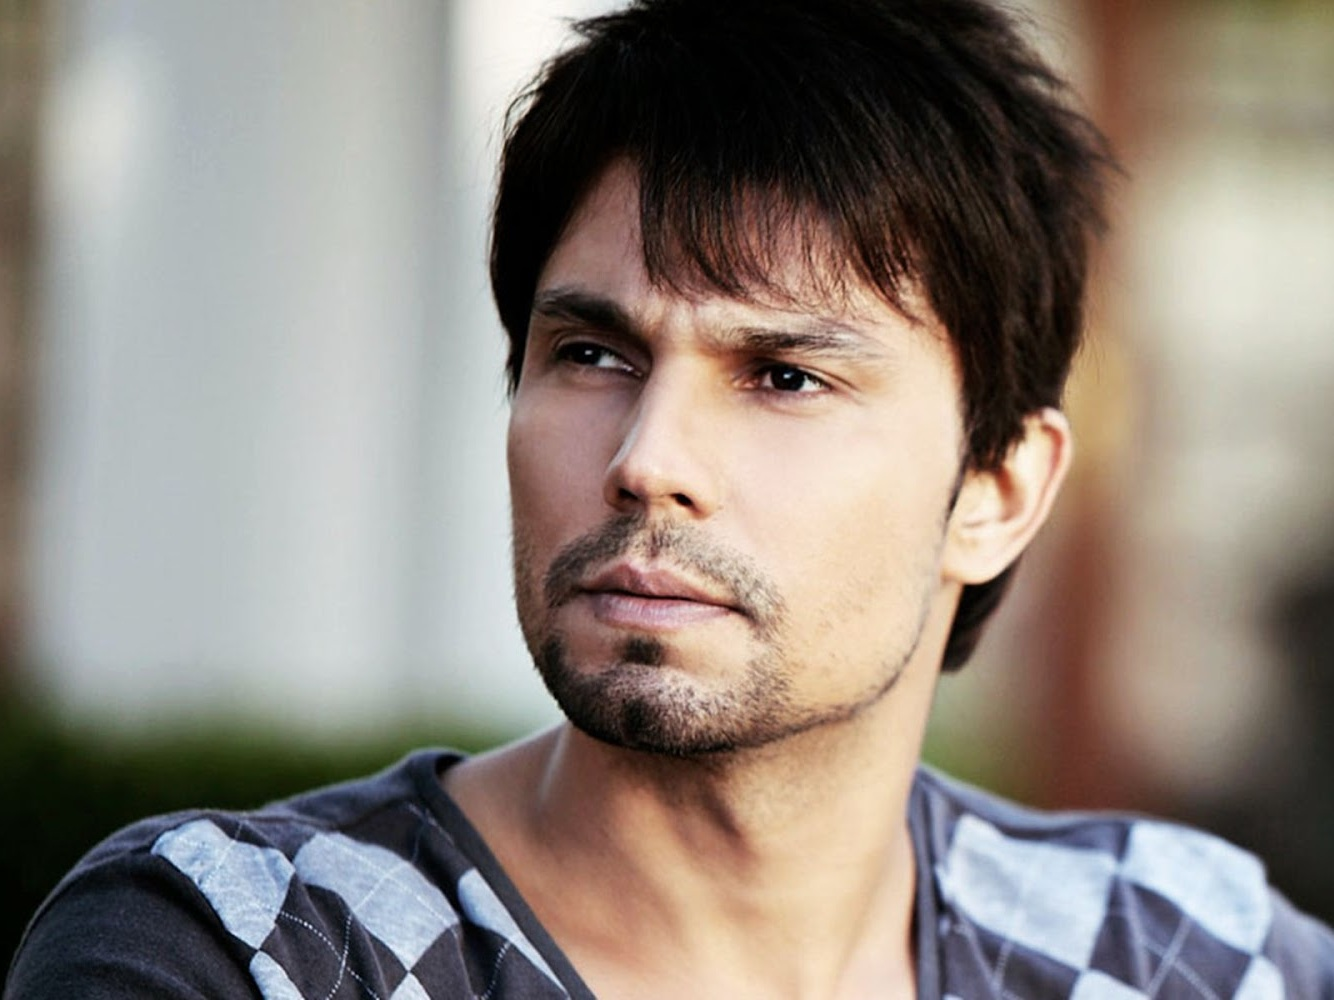 Randeep, Randeep Hooda, Hooda, Intense Acting, Movie, Movie Roles By Randeep Hooda, D, Once Upon A Time In Mumbai, D Underworld Badshah, Main Aur Charles, Sahib Biwi Aur Gangster, Rang Rasiya, Sarbjit, Sultan, Highway